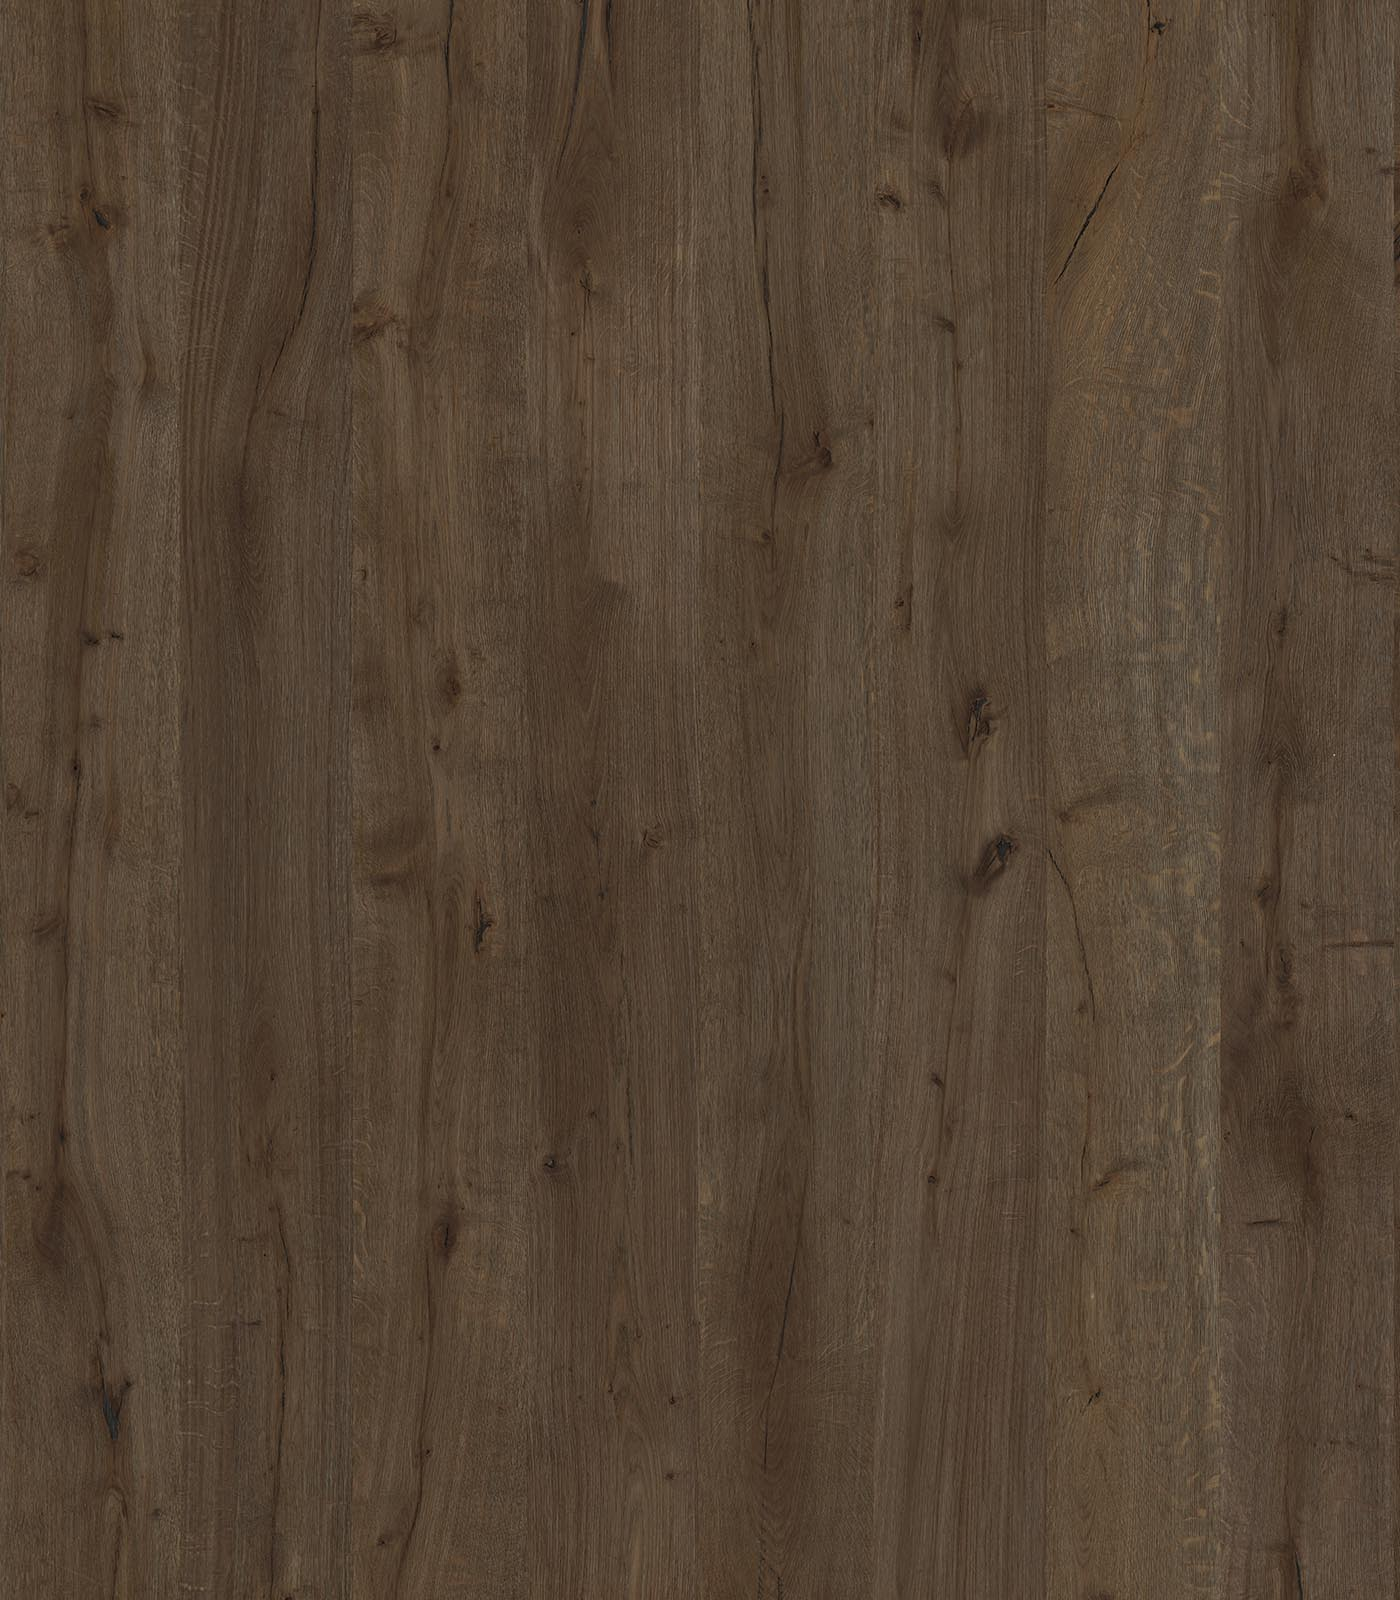 Marianna-Variante Collection-European Oak Floors-flat